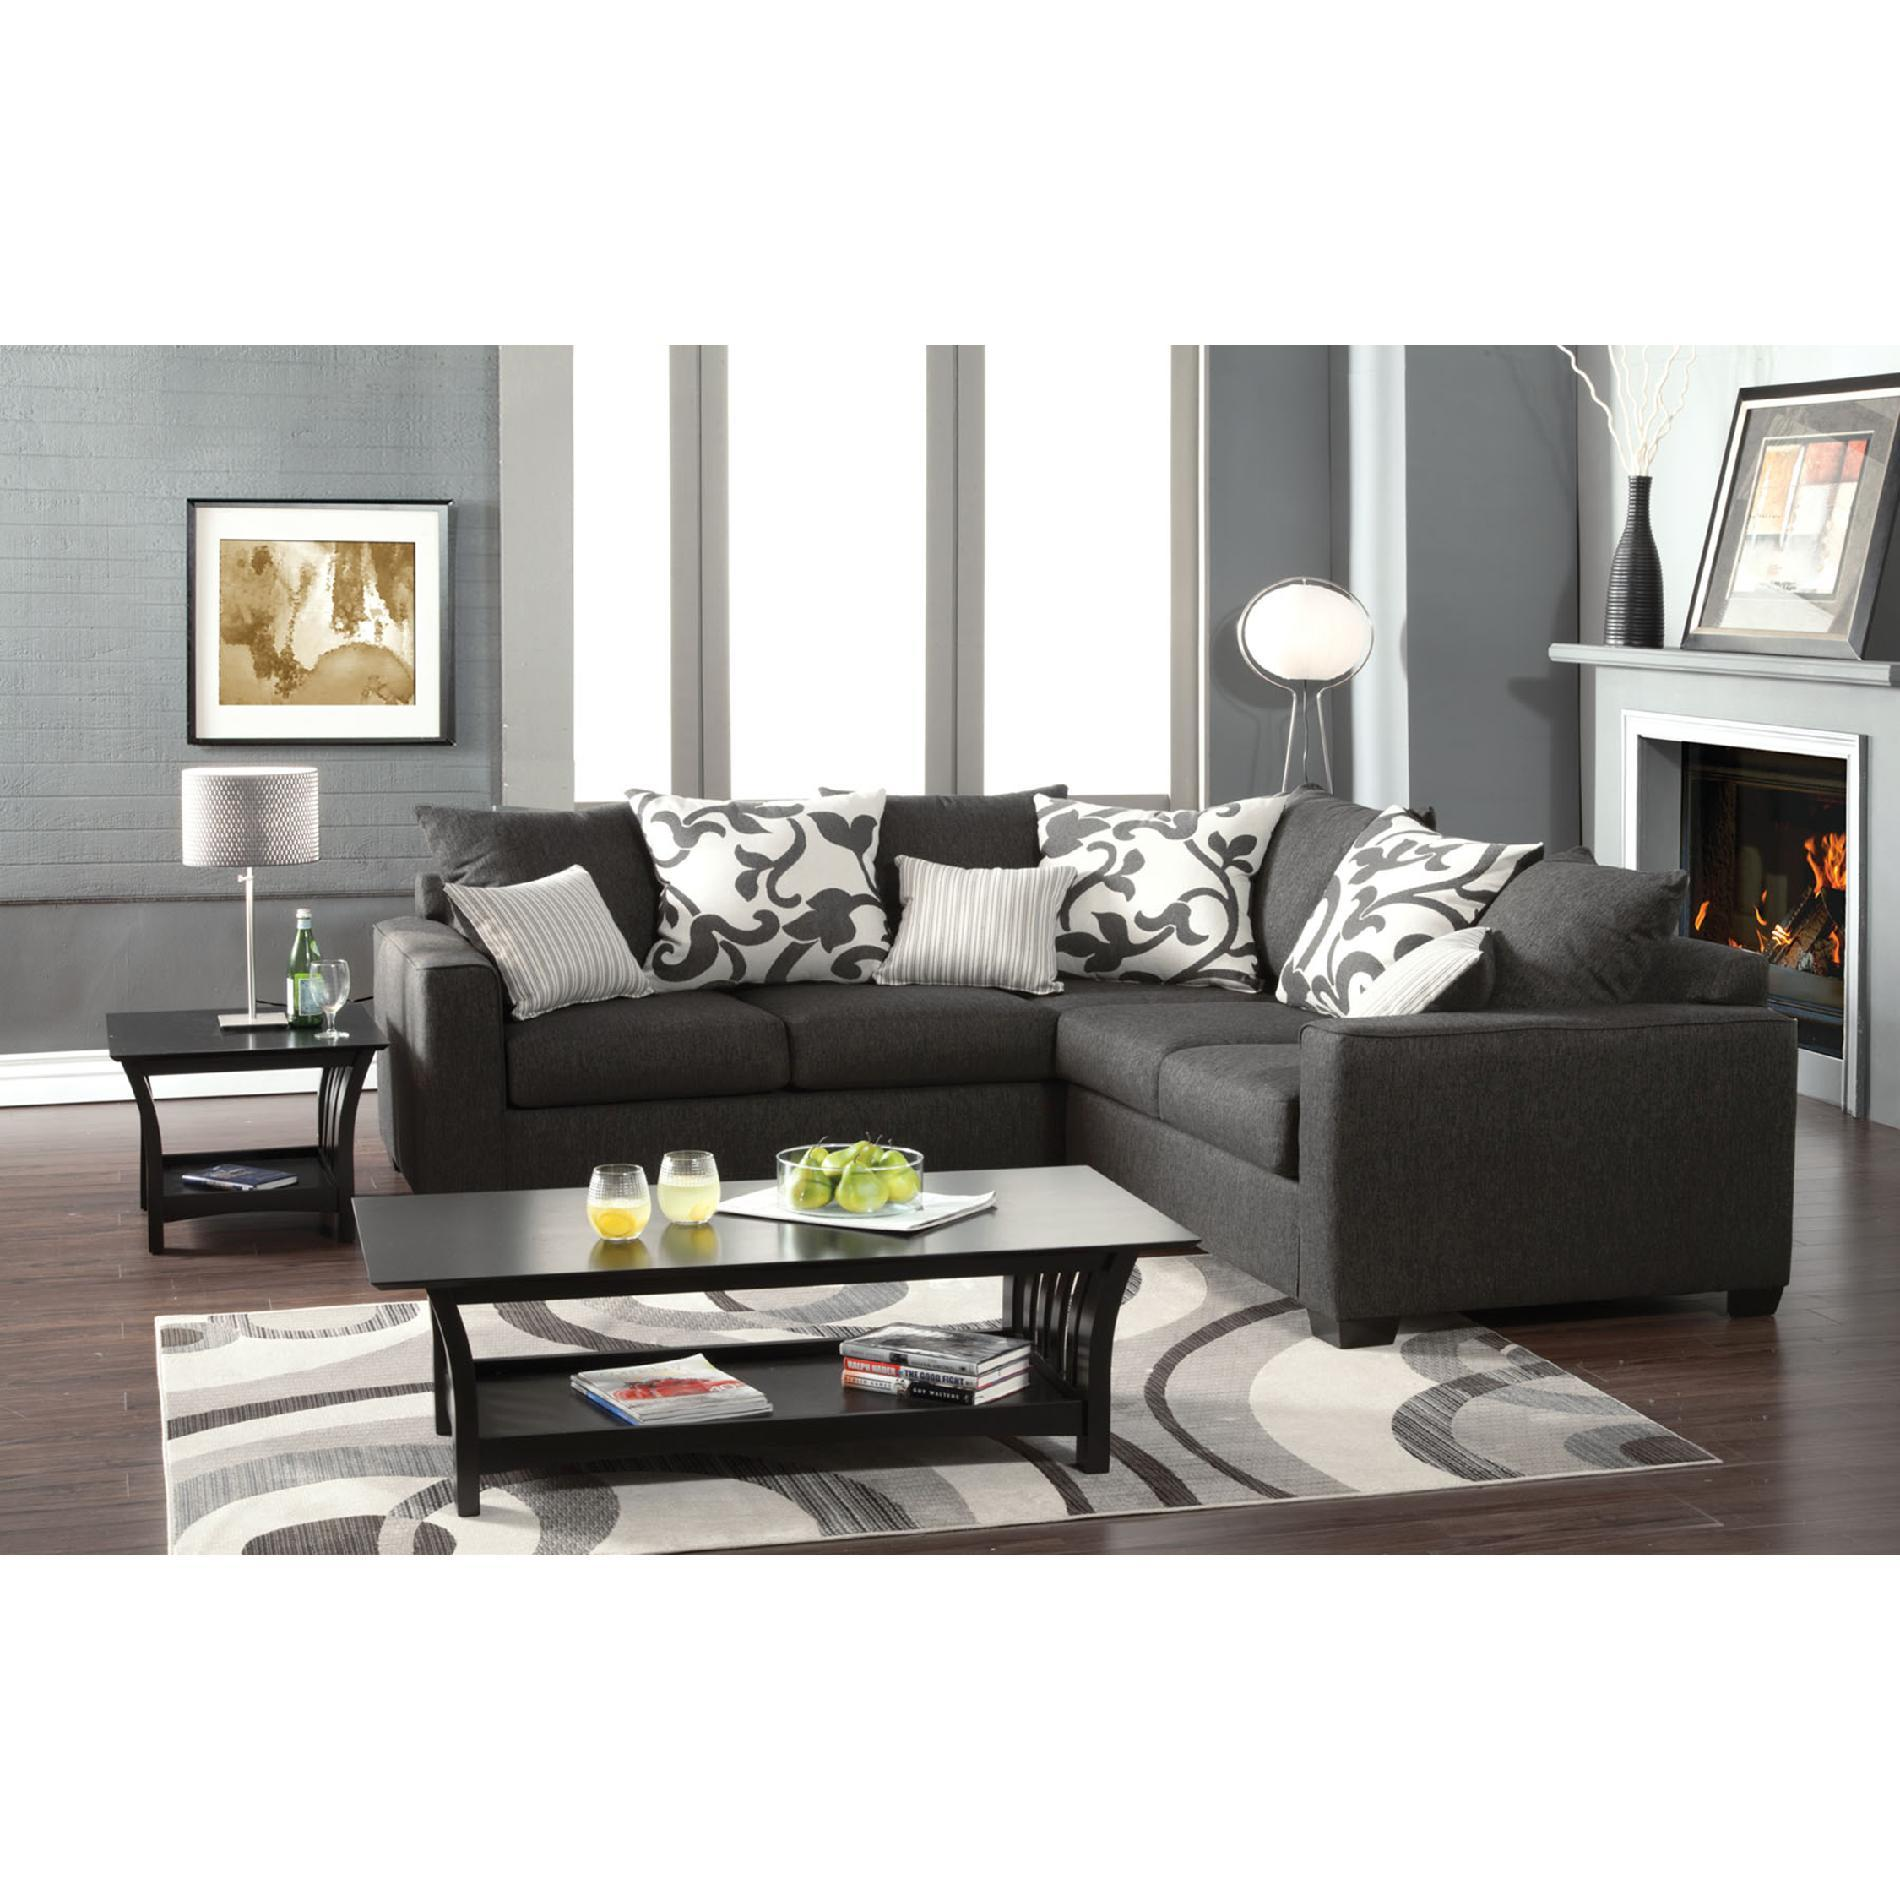 CRANBROOK Charcoal Gray Sectional Sofa From SEARS Epic